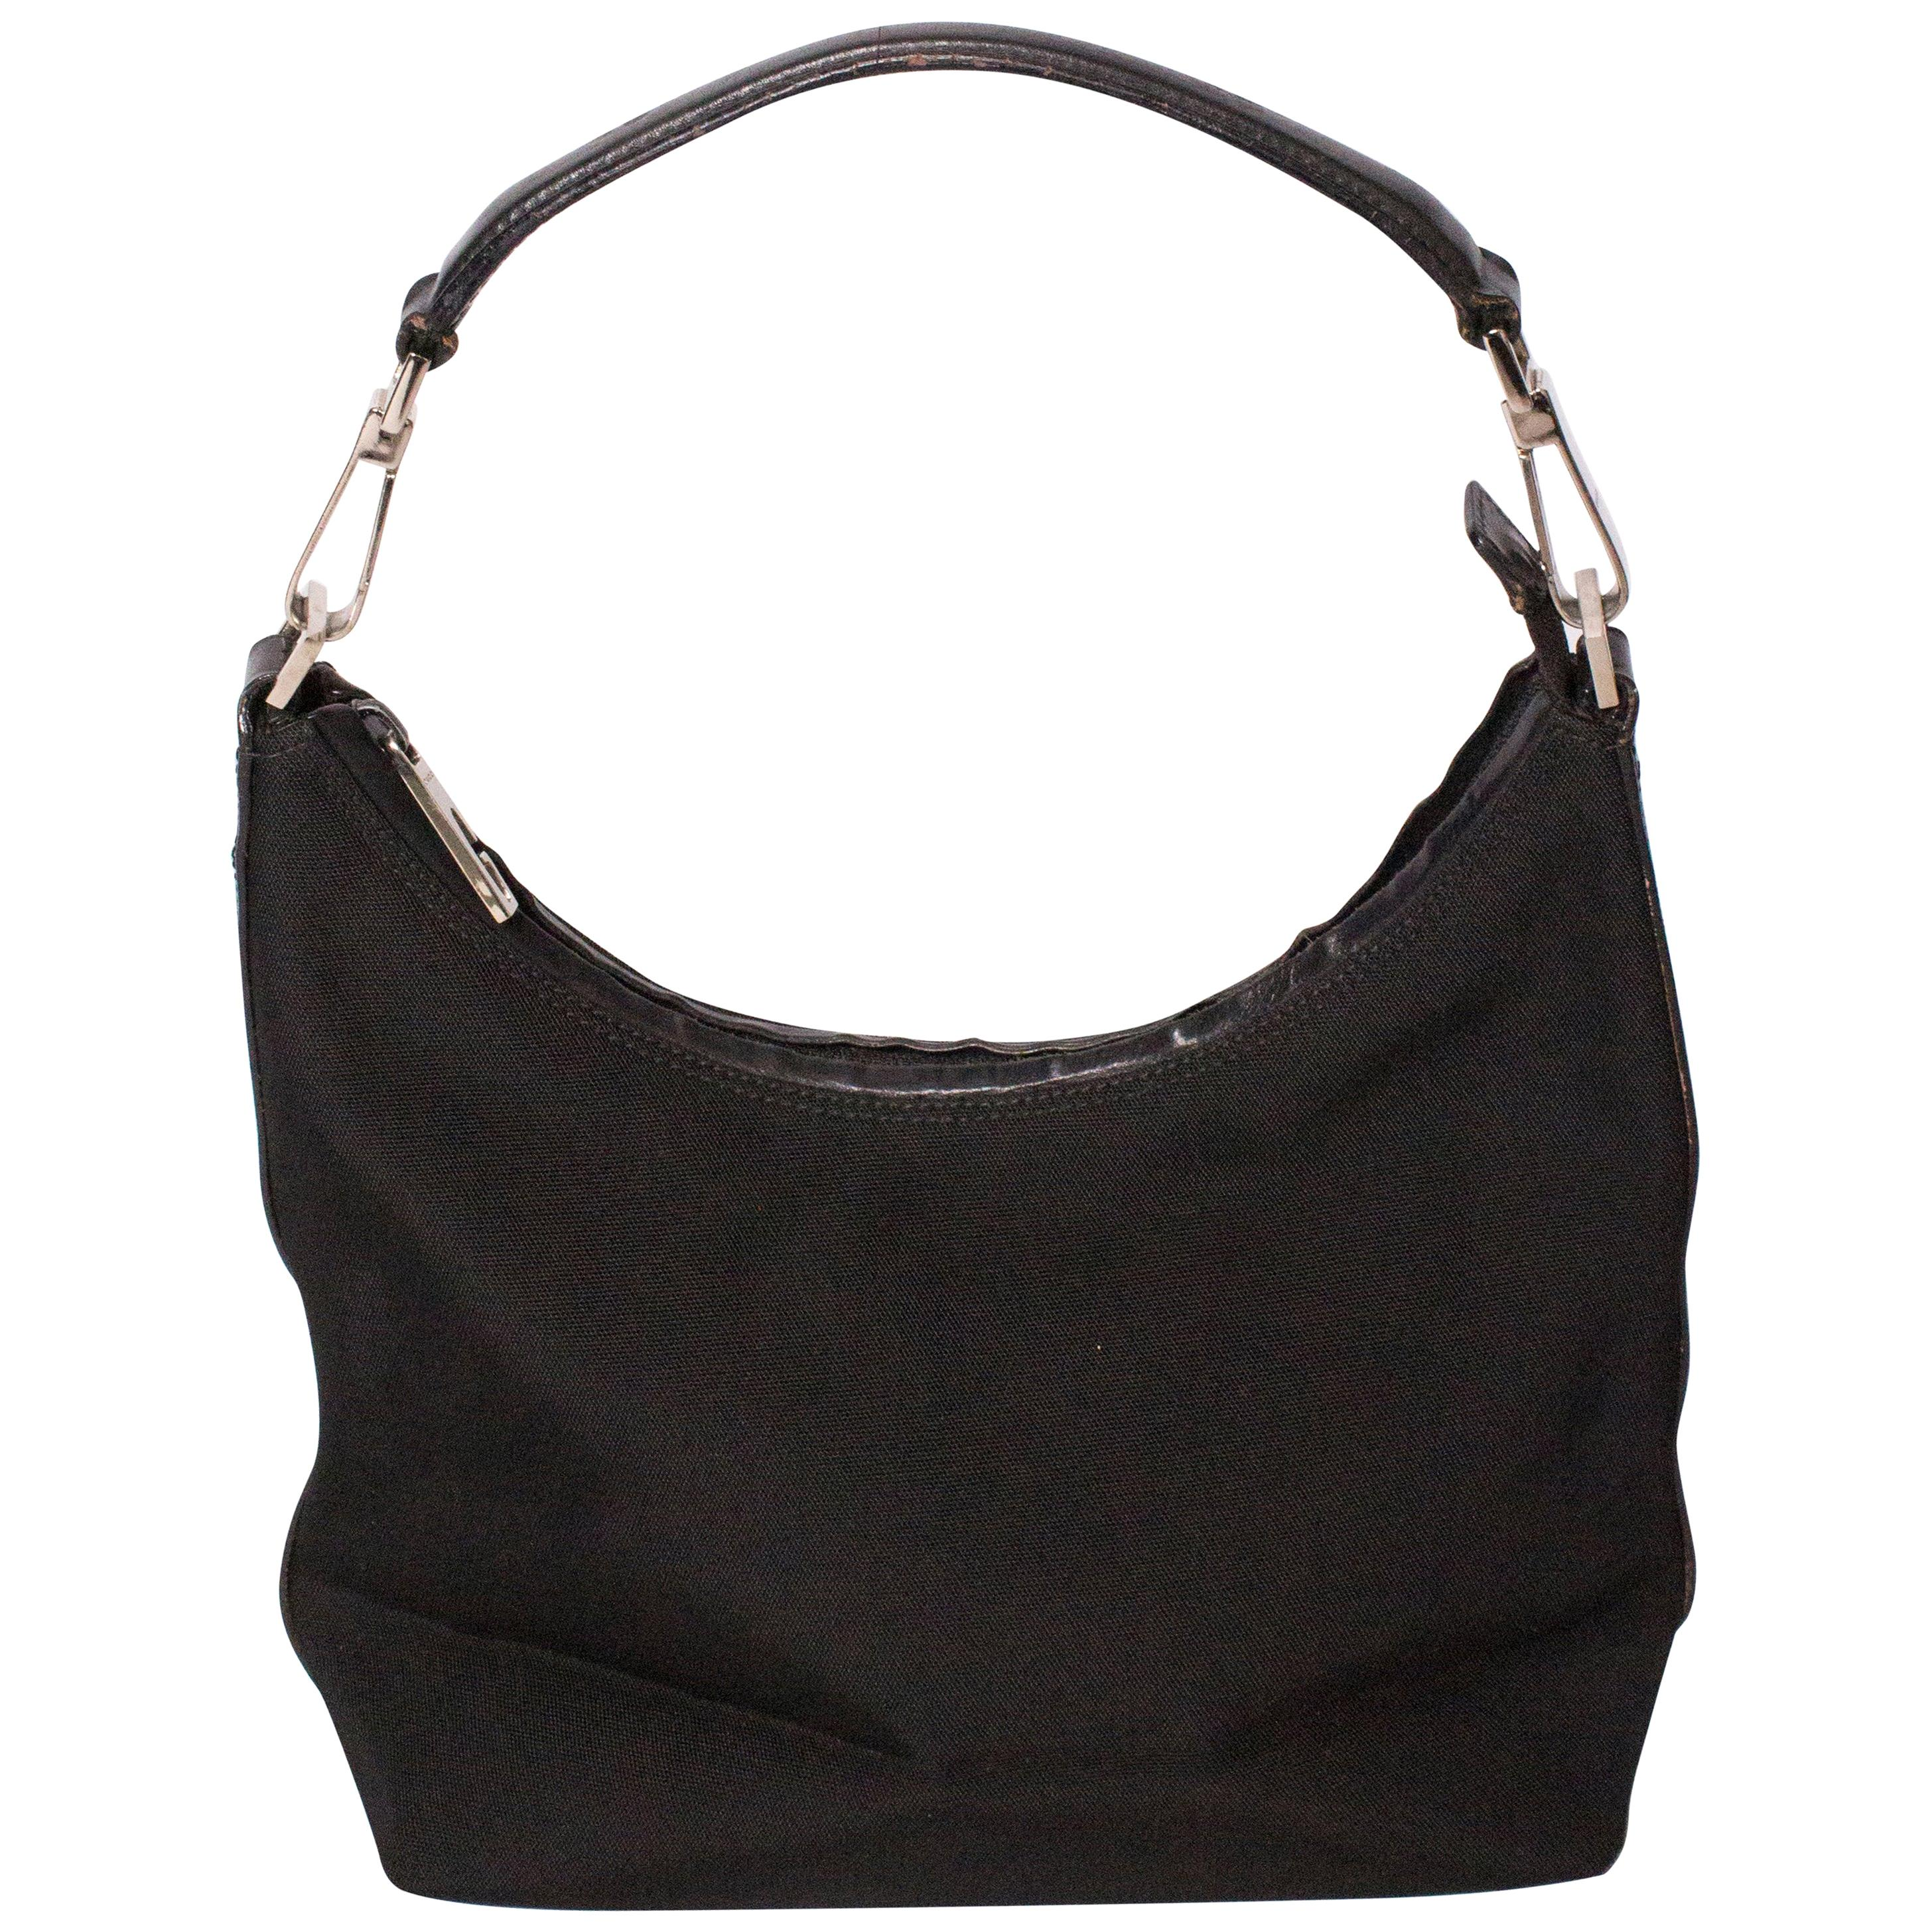 5dc75da68c656 Gucci Black Leather Shoulder Bag with Black Bamboo Handle For Sale at  1stdibs